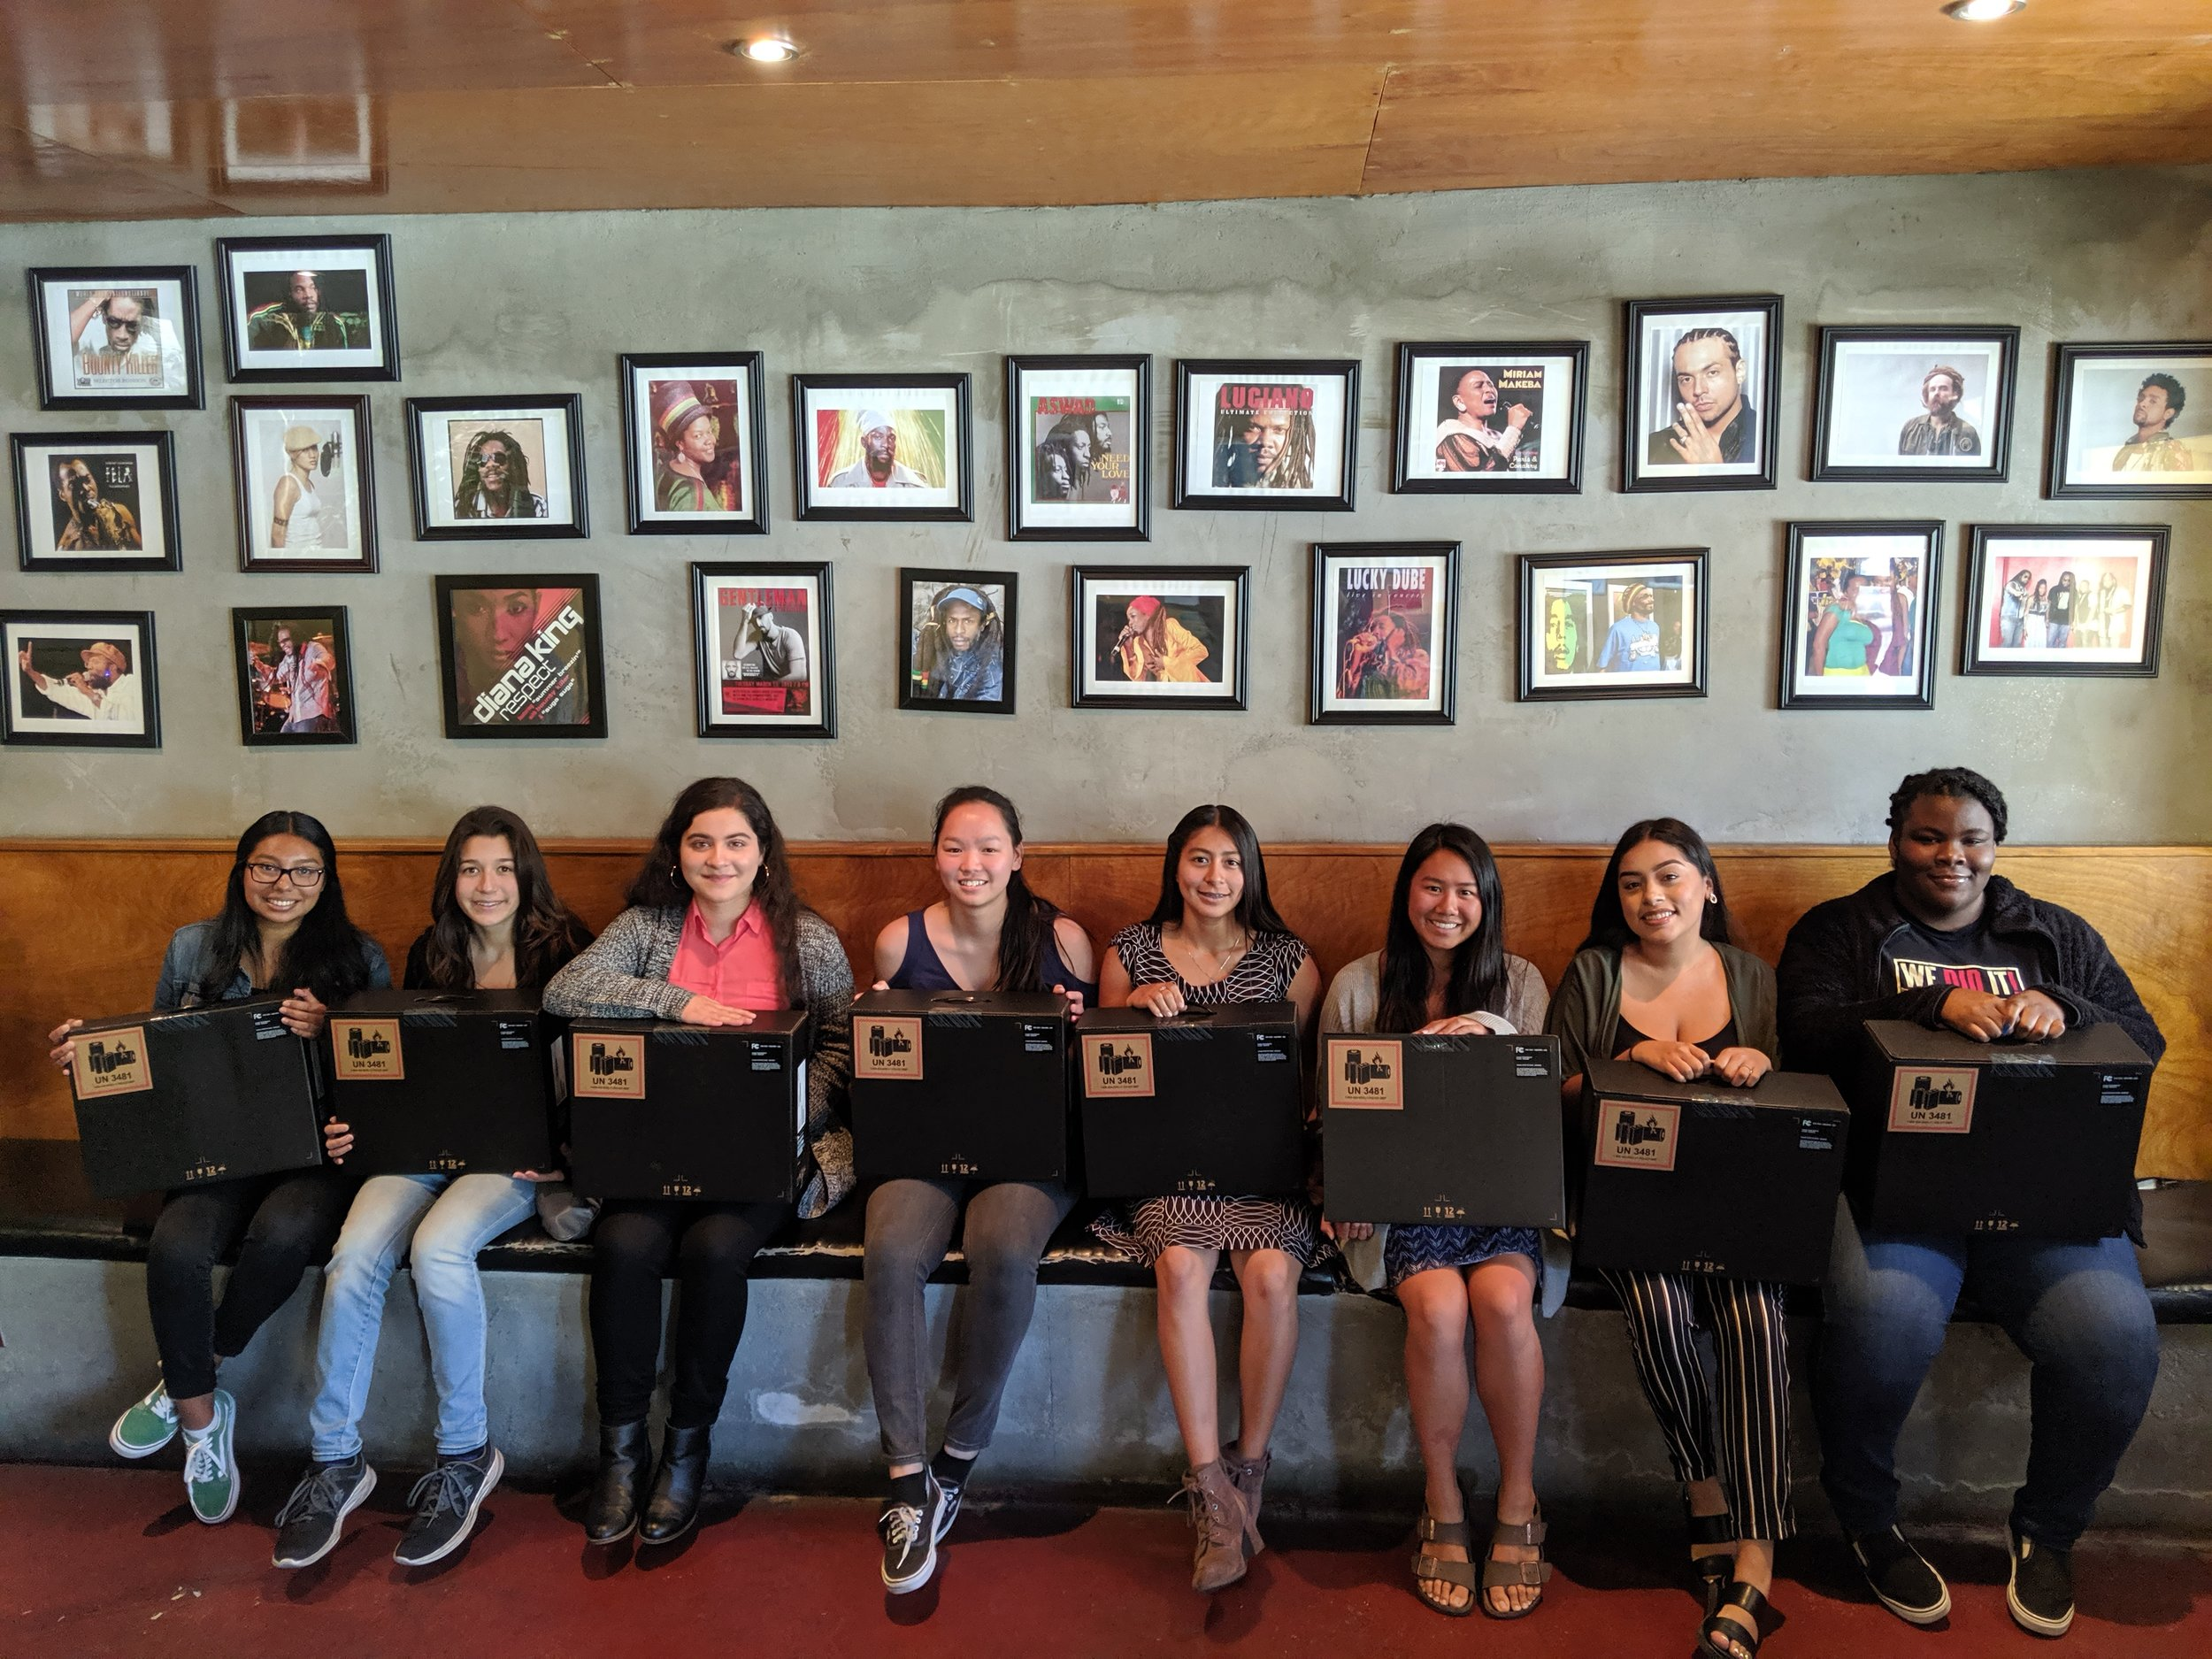 2019's Fluegelman Bunnell fellows pose with their HP laptops at the award luncheon on June 29, 2019